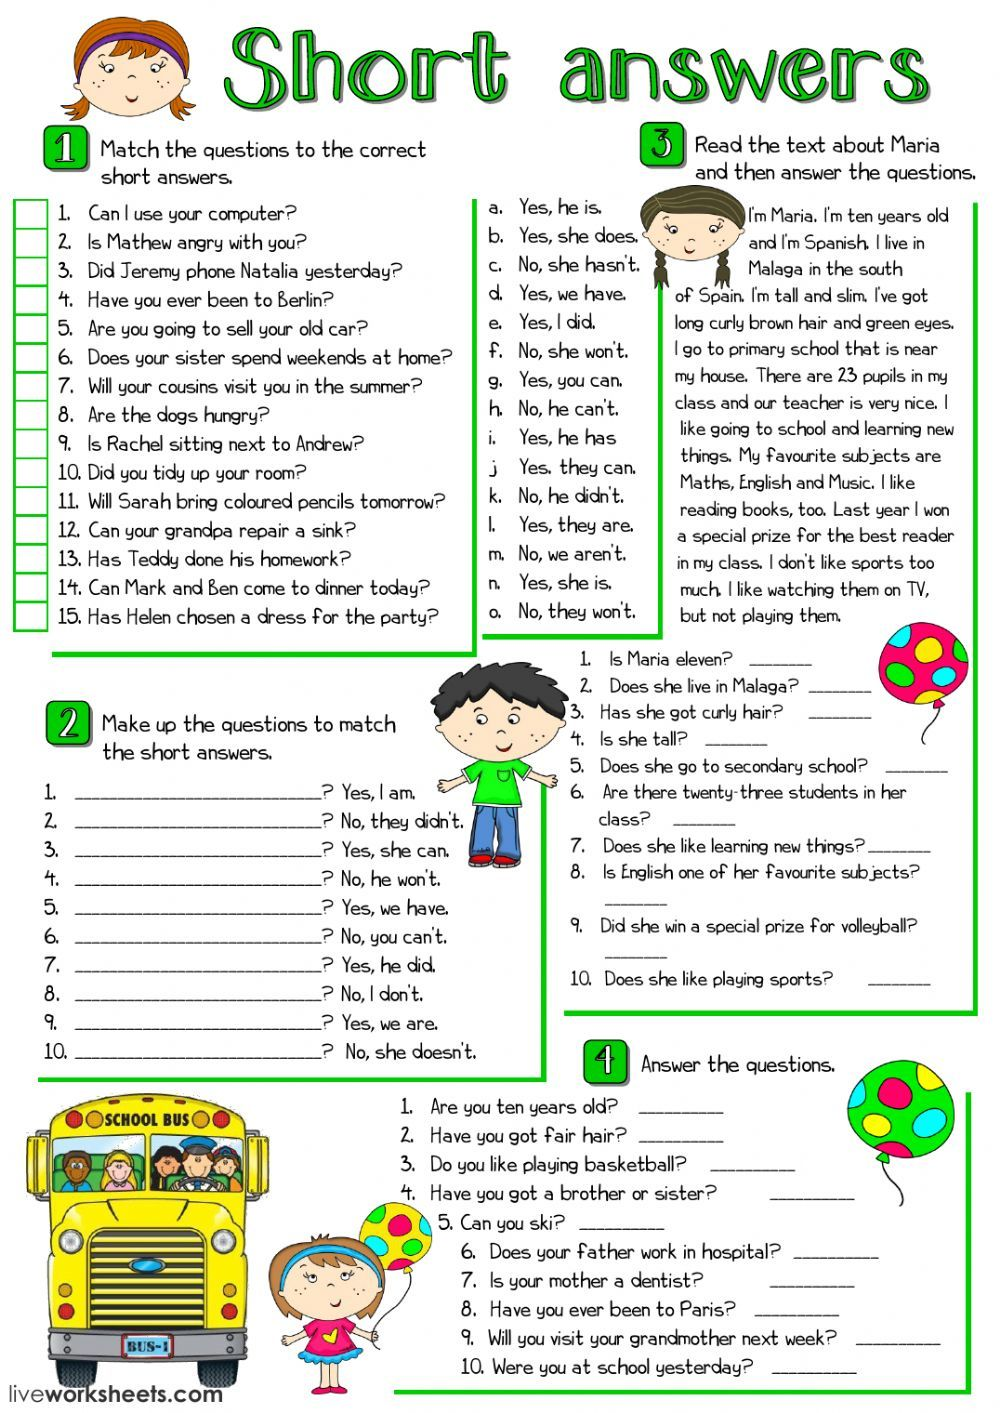 Short answers interactive and downloadable worksheet. You